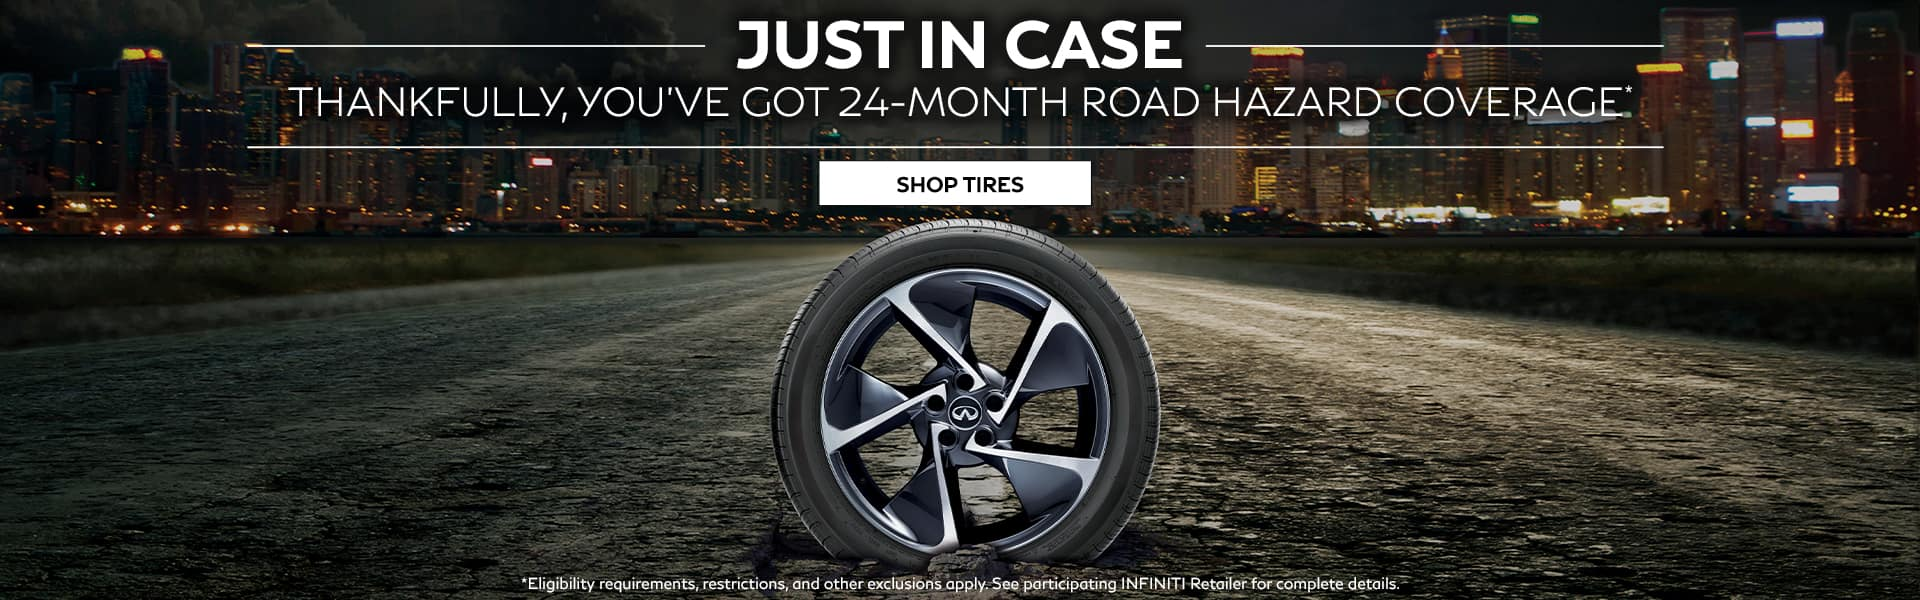 Eligibility requirements, restrictions, and other exclusions apply. See participating INFINITI Retailer for complete details.